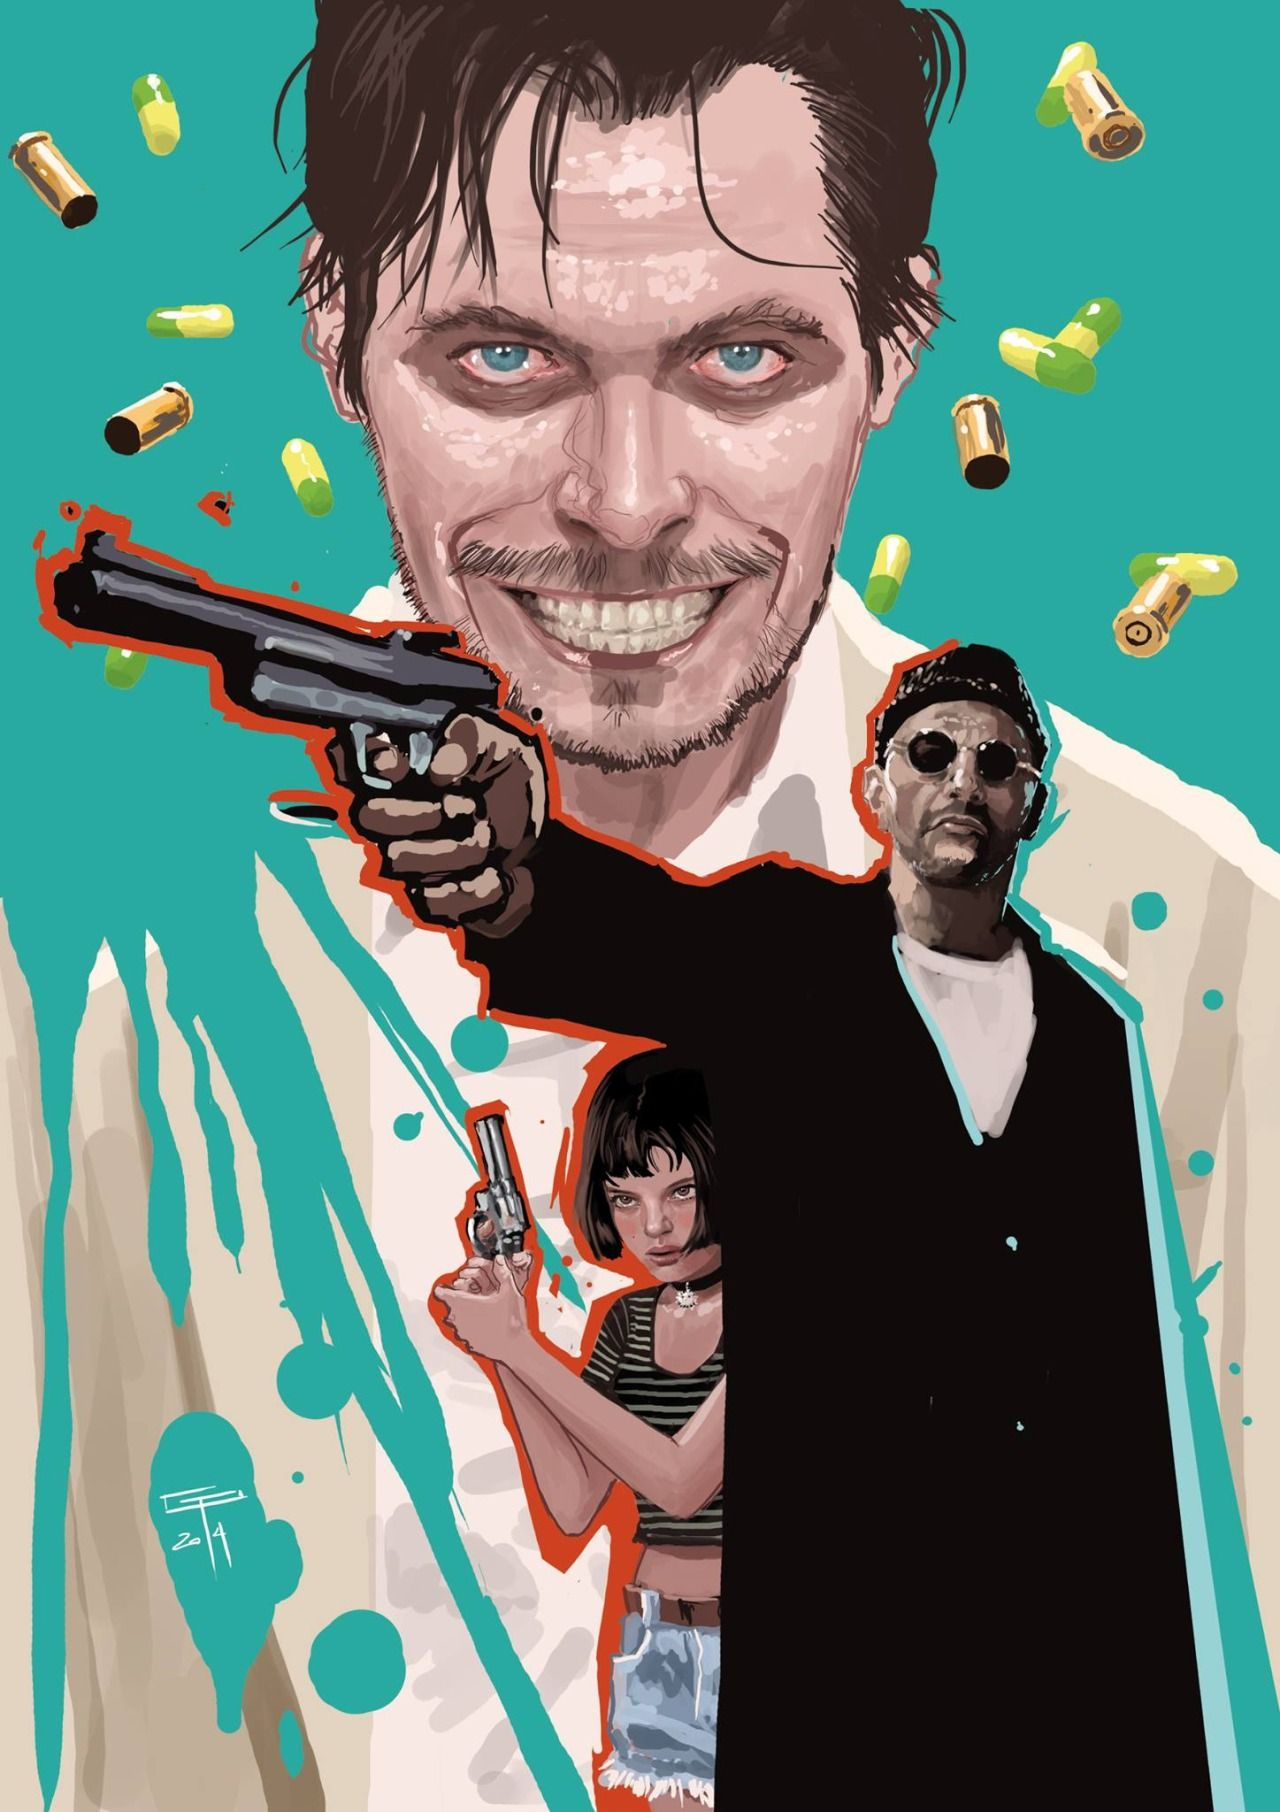 Cult actors. Leon - Aesthetic gangster drama from Luc Besson 88